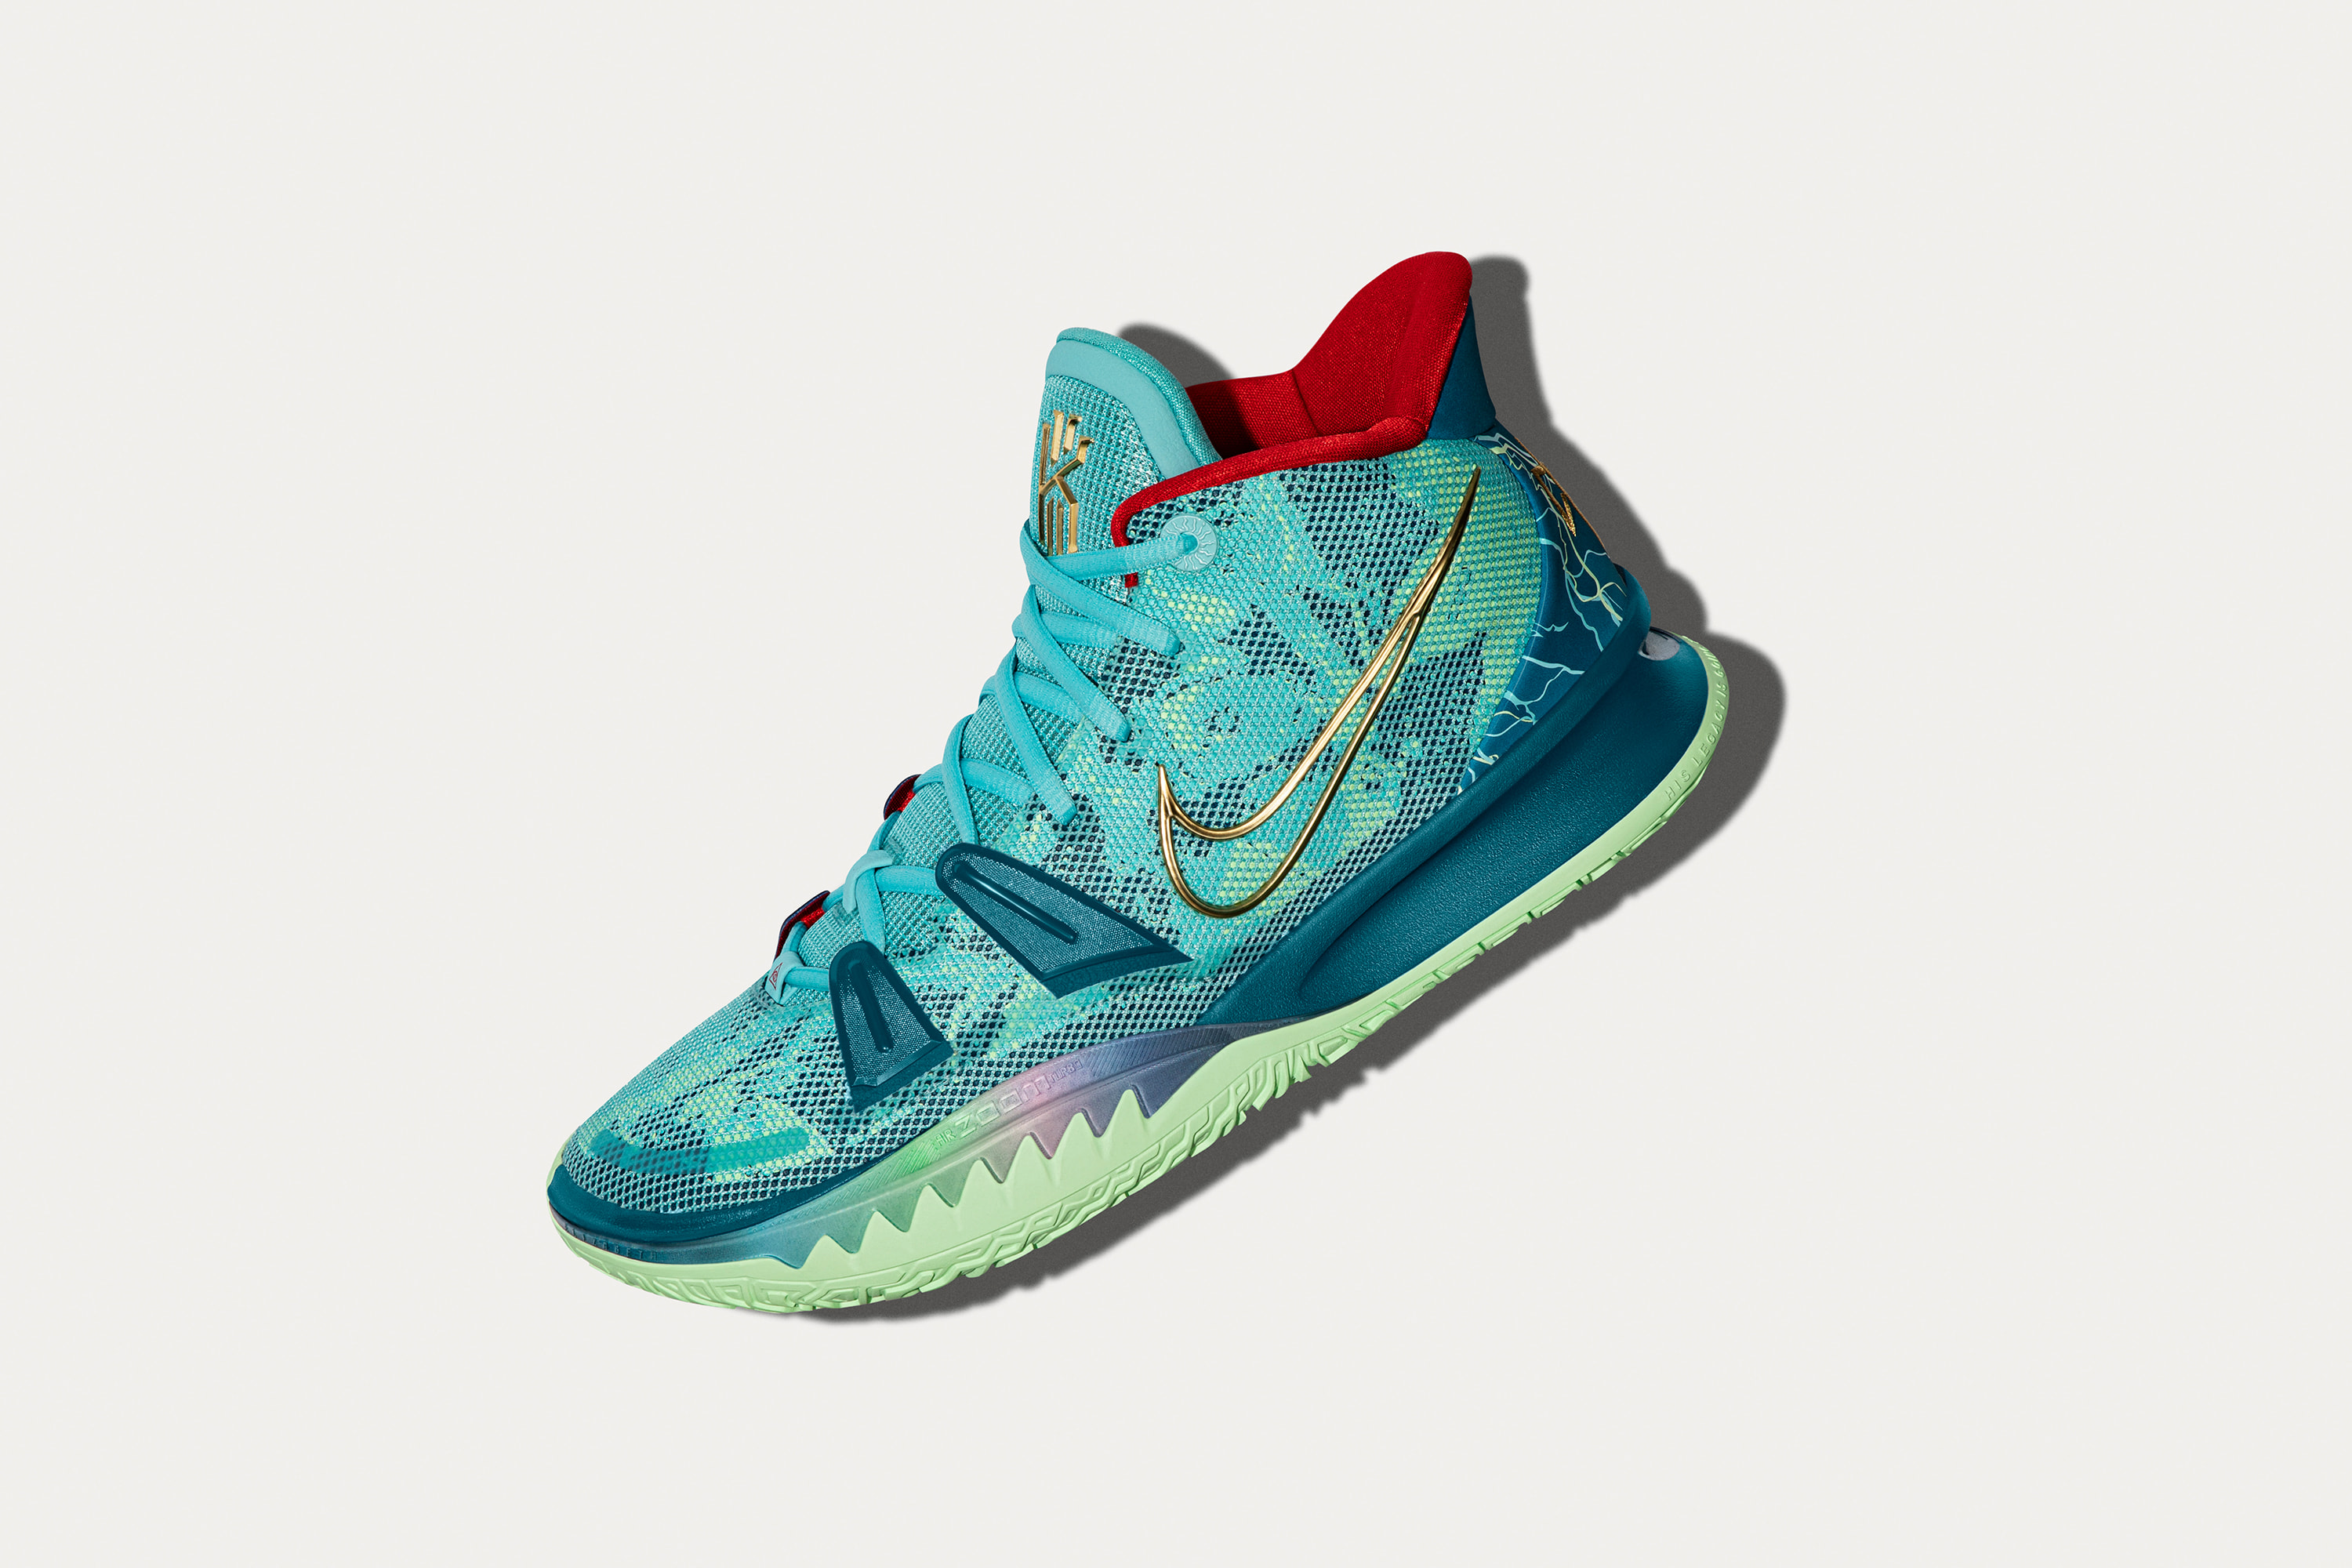 Nike Kyrie 7 Preheat 'Special FX' Lateral